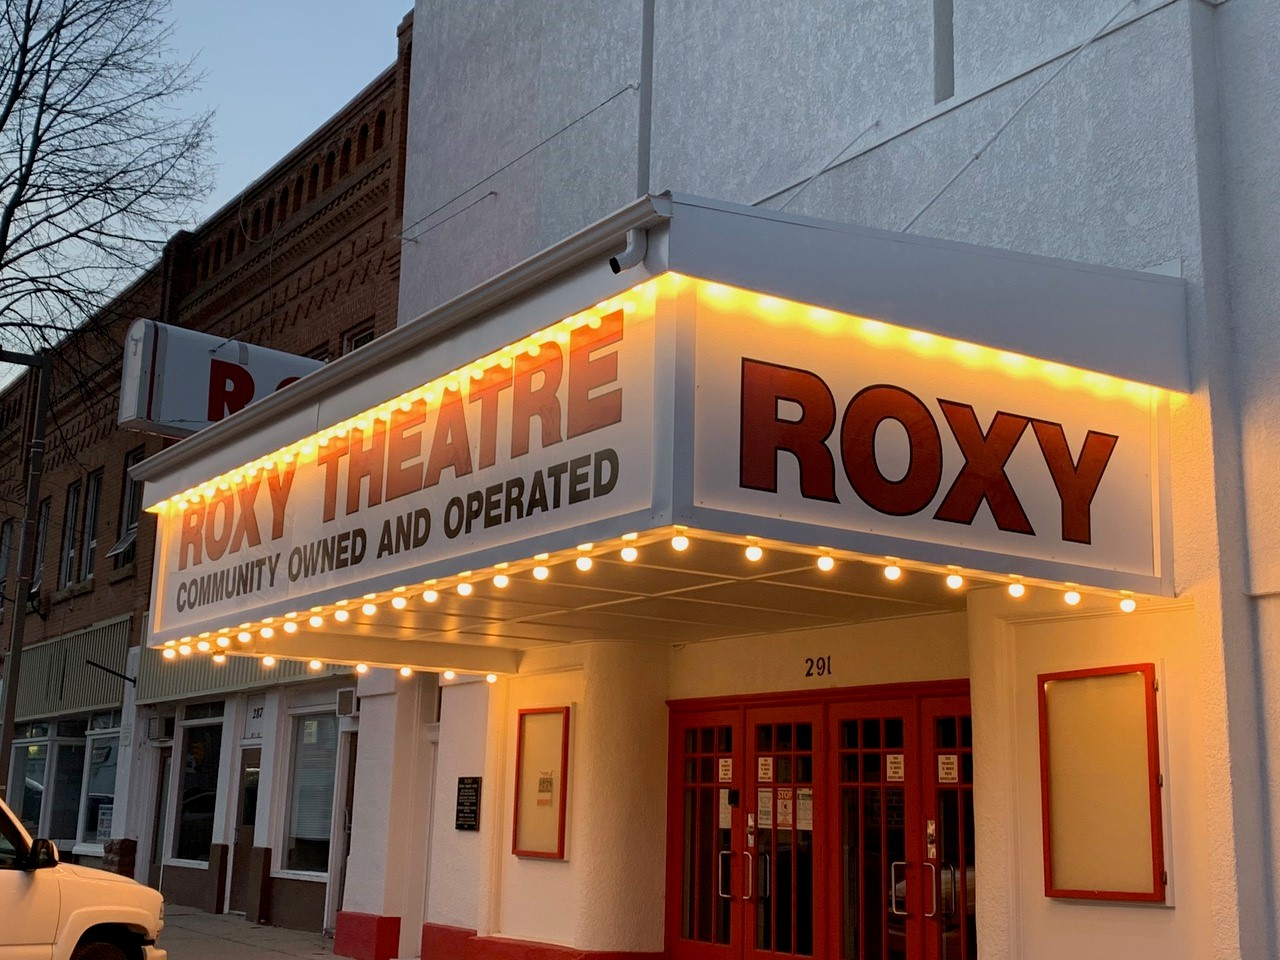 Roxy Theatre after the marquee upgrades